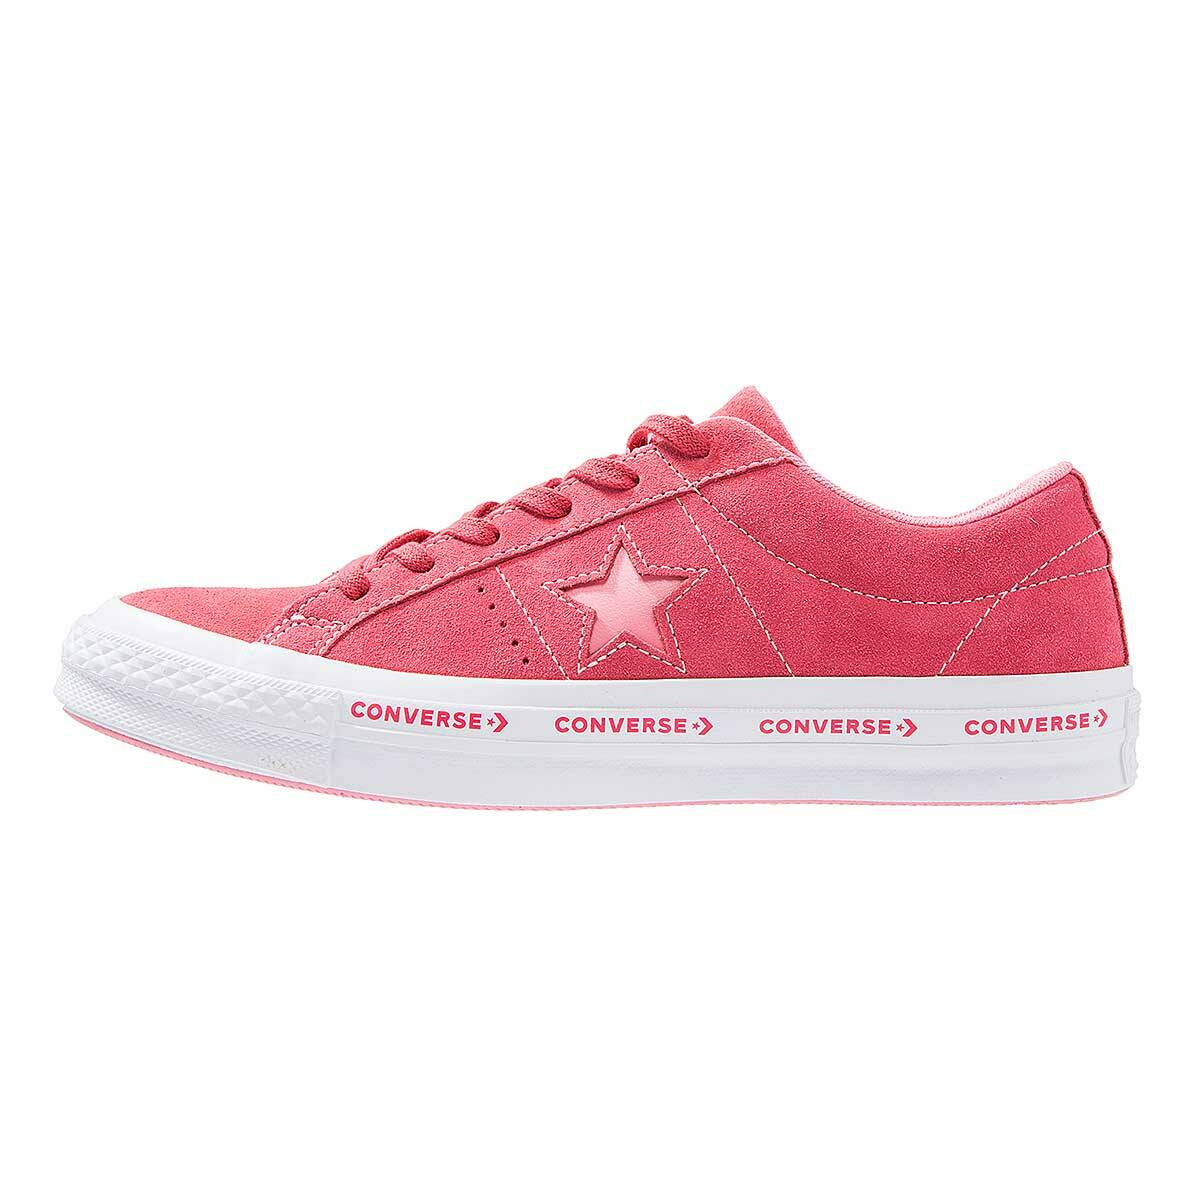 Converse One Star Ox in pink 159815C   everysize